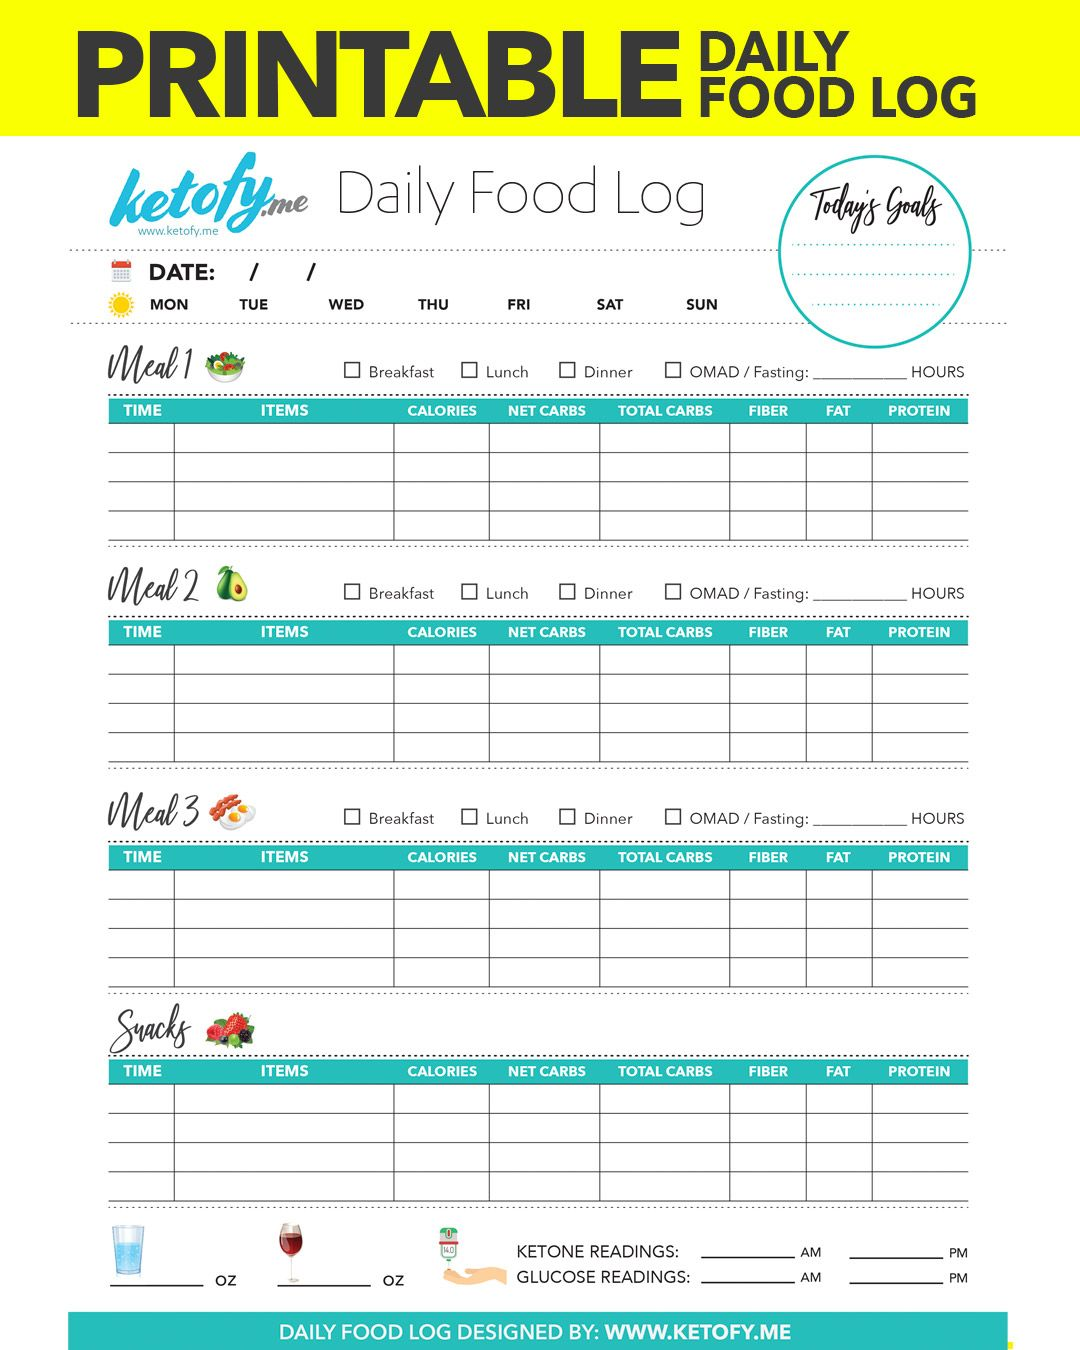 You Can Download Amp Print My Daily Food Log Here This Was